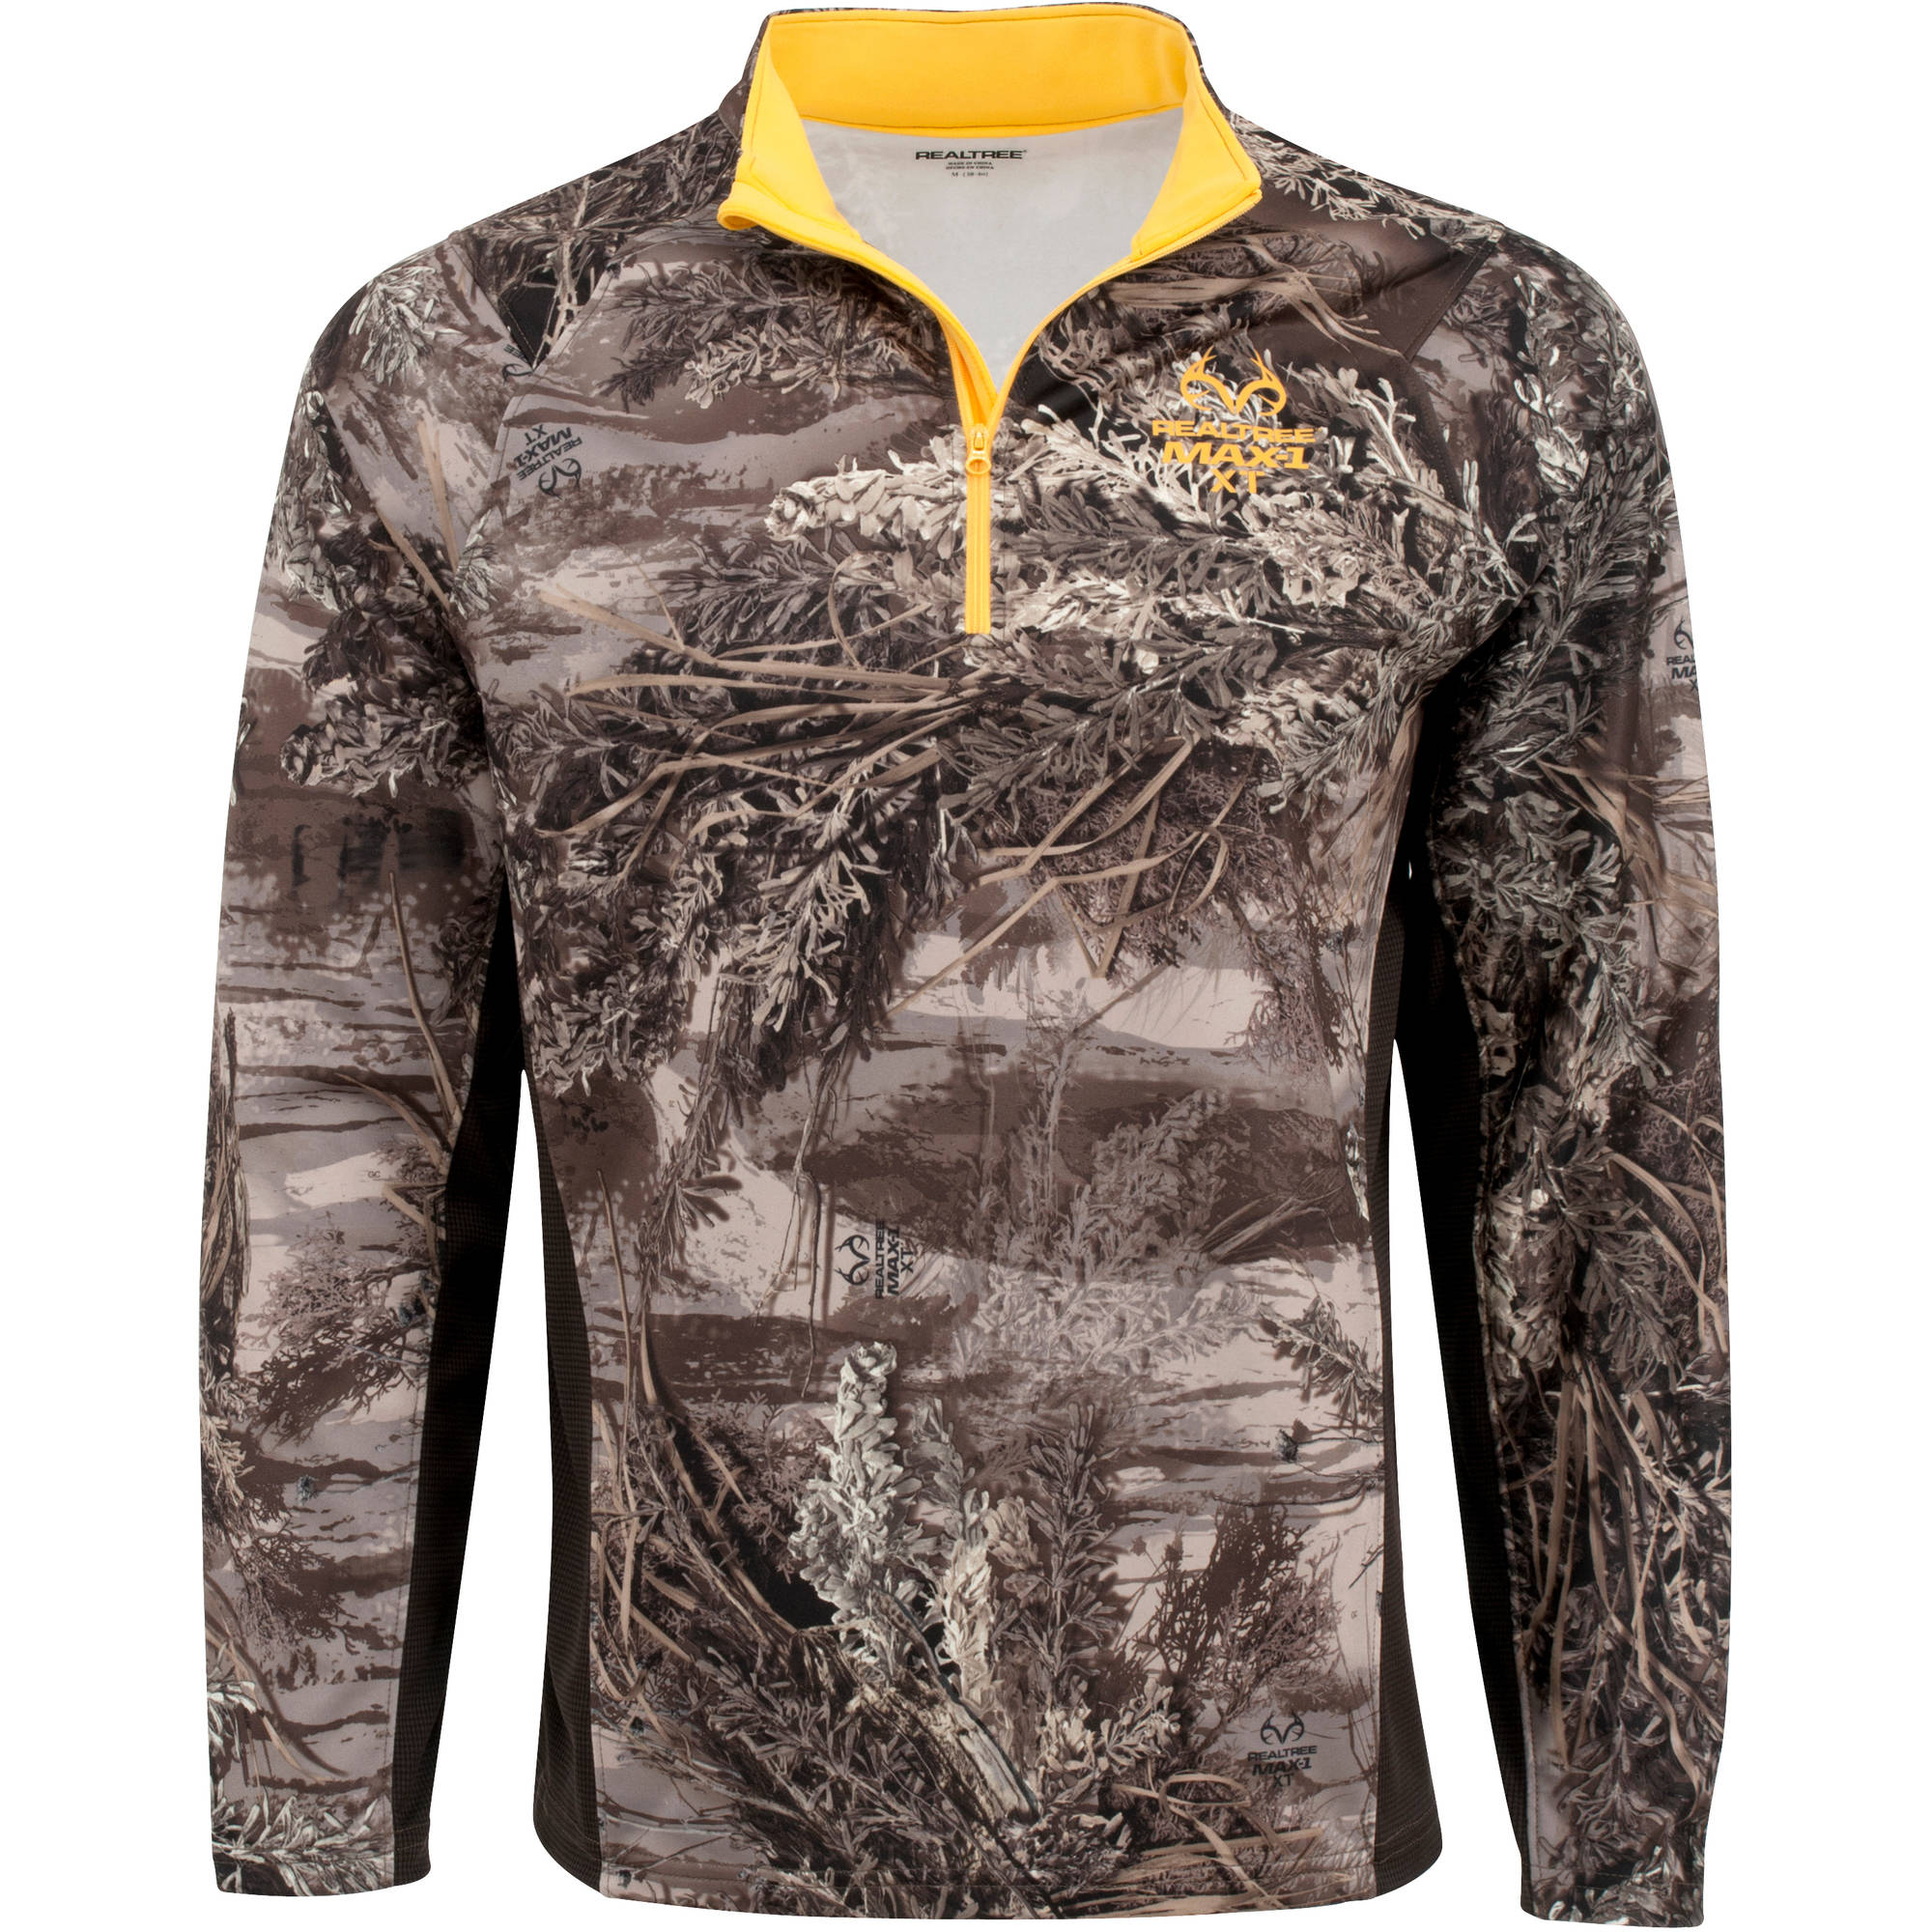 Mens 1/4 Zip Performance Long-Sleeved Tee, Multiple Patterns